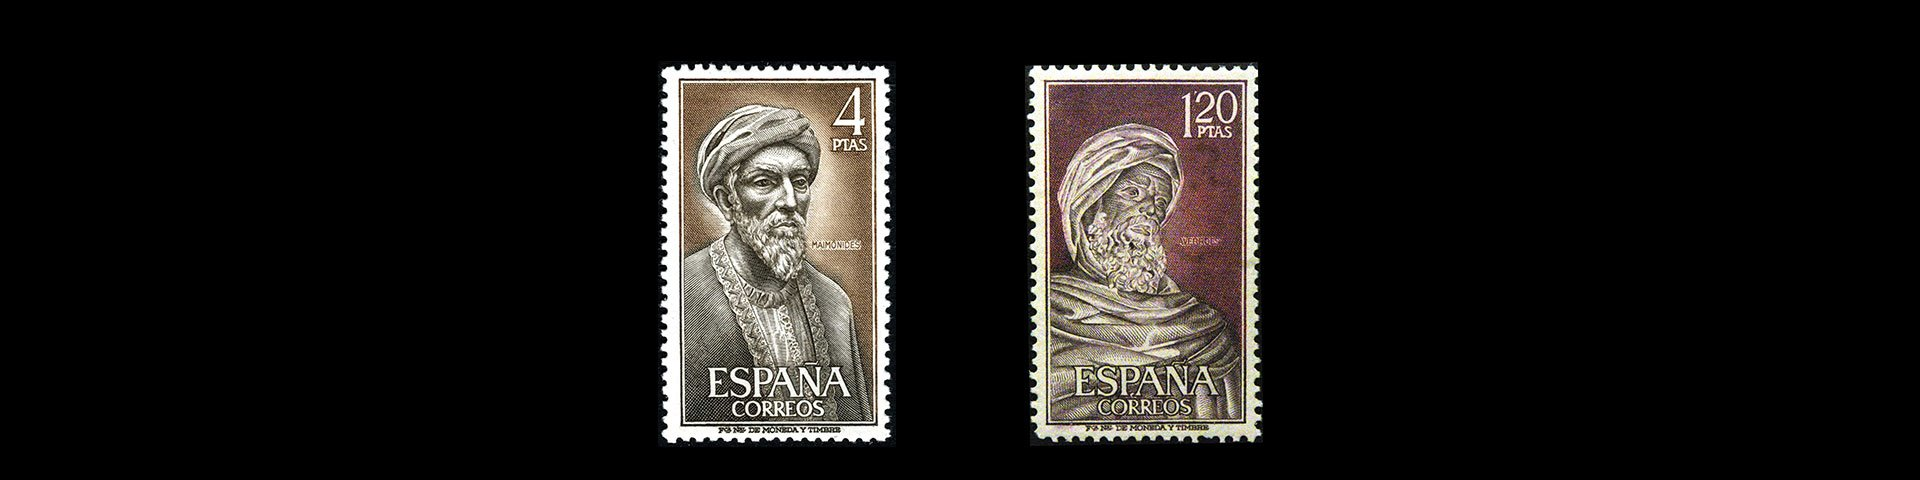 Averroes, the Andalusian-Arab philosopher who broke ground in Medieval thought